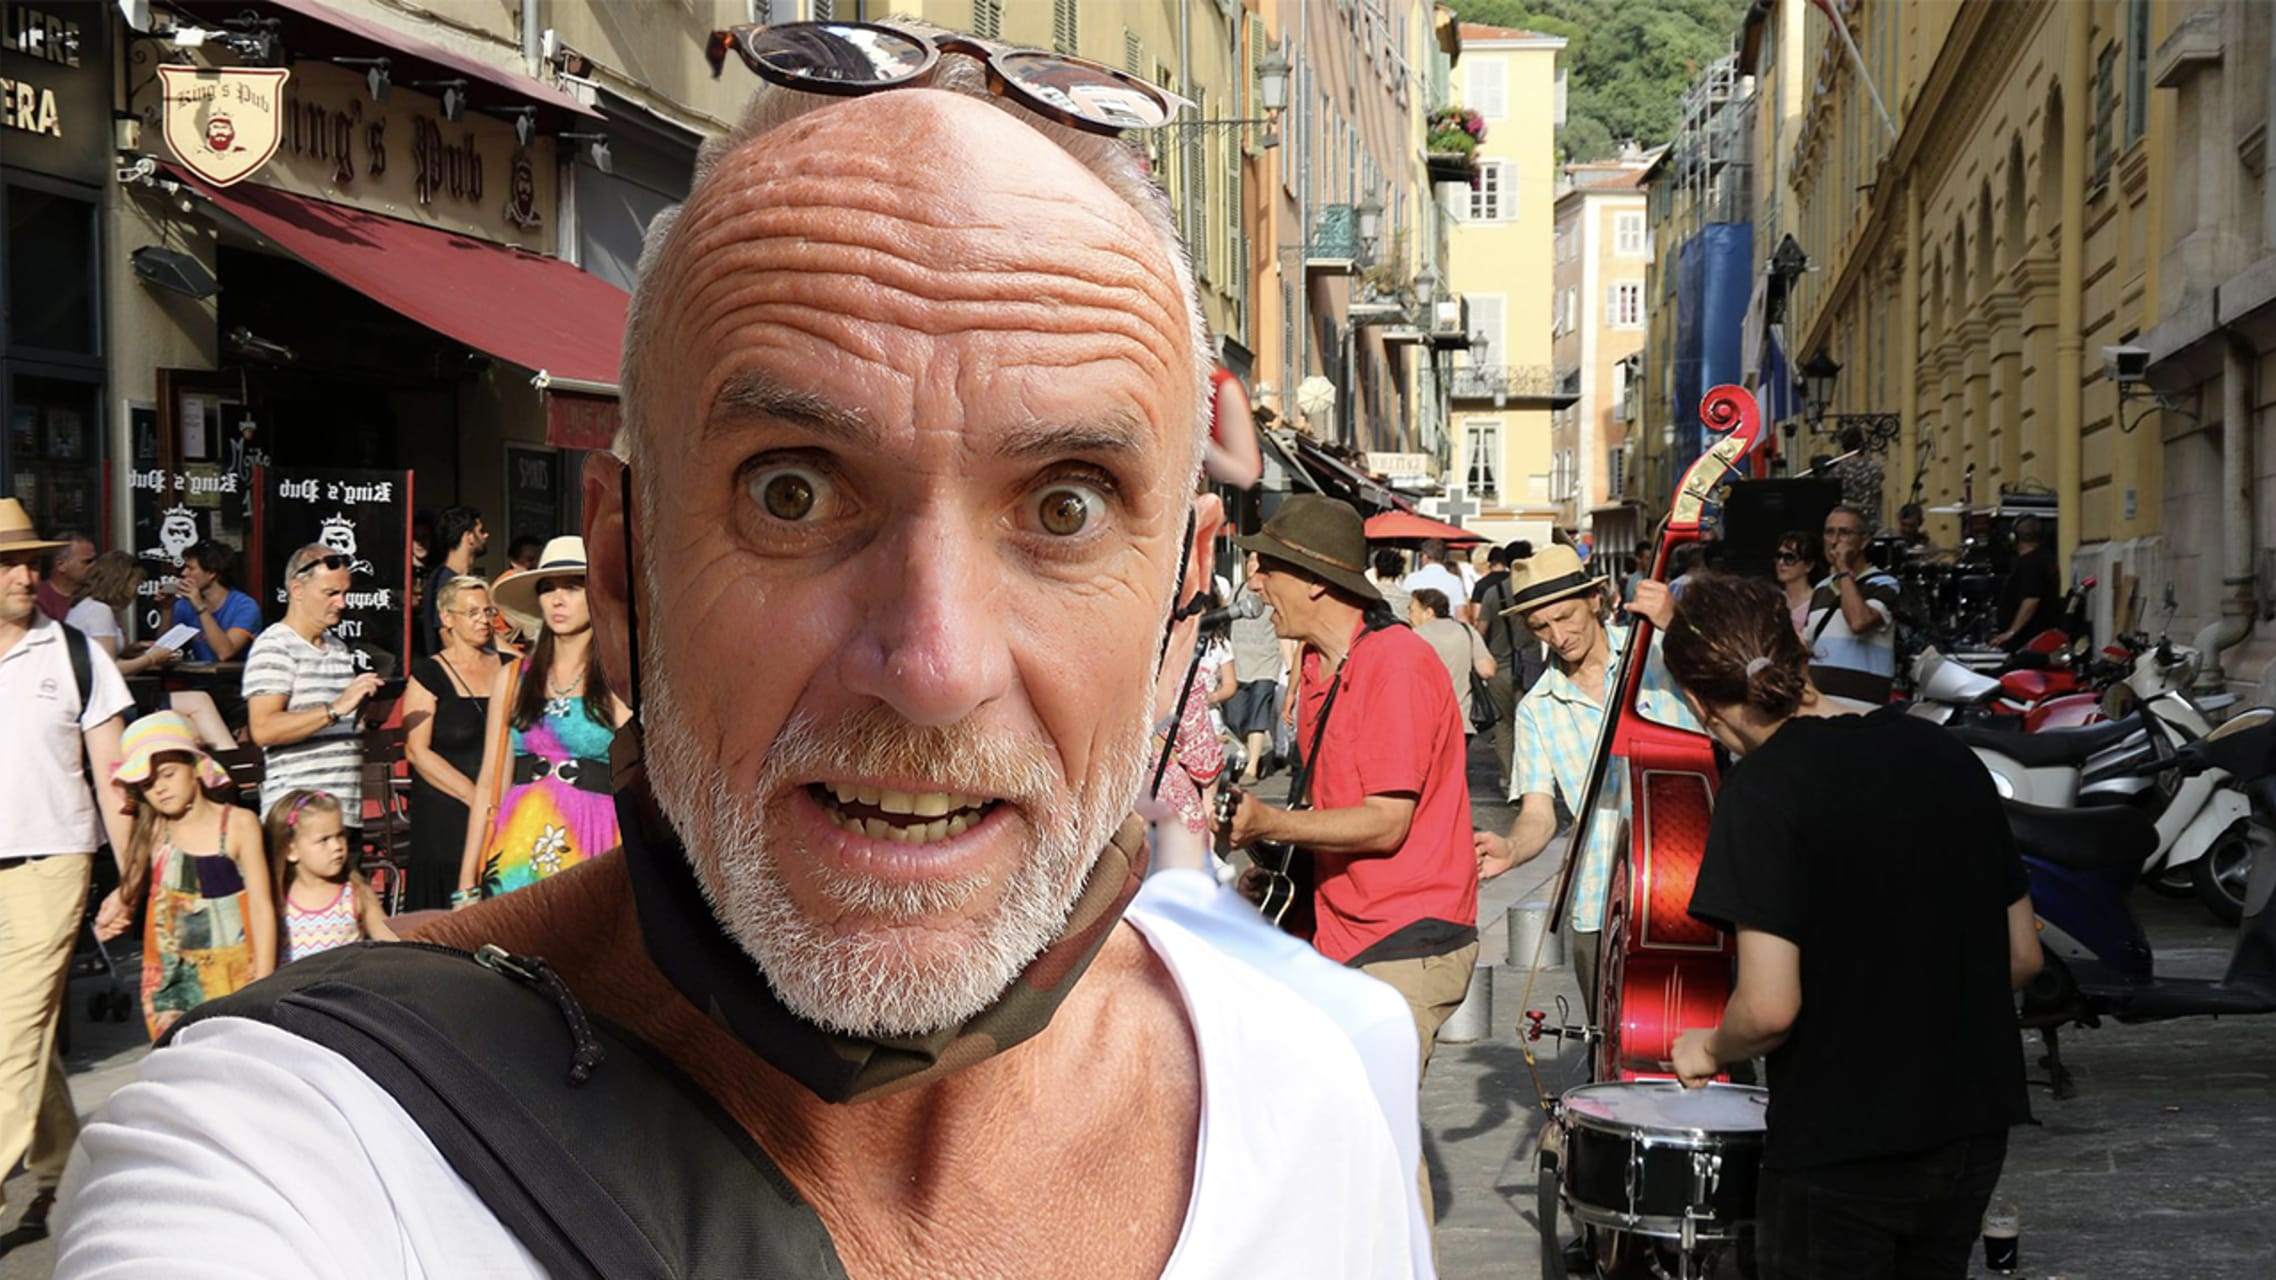 French Riviera - Nice Goes Wild!  The Festival of Music turns the city into a giant party!